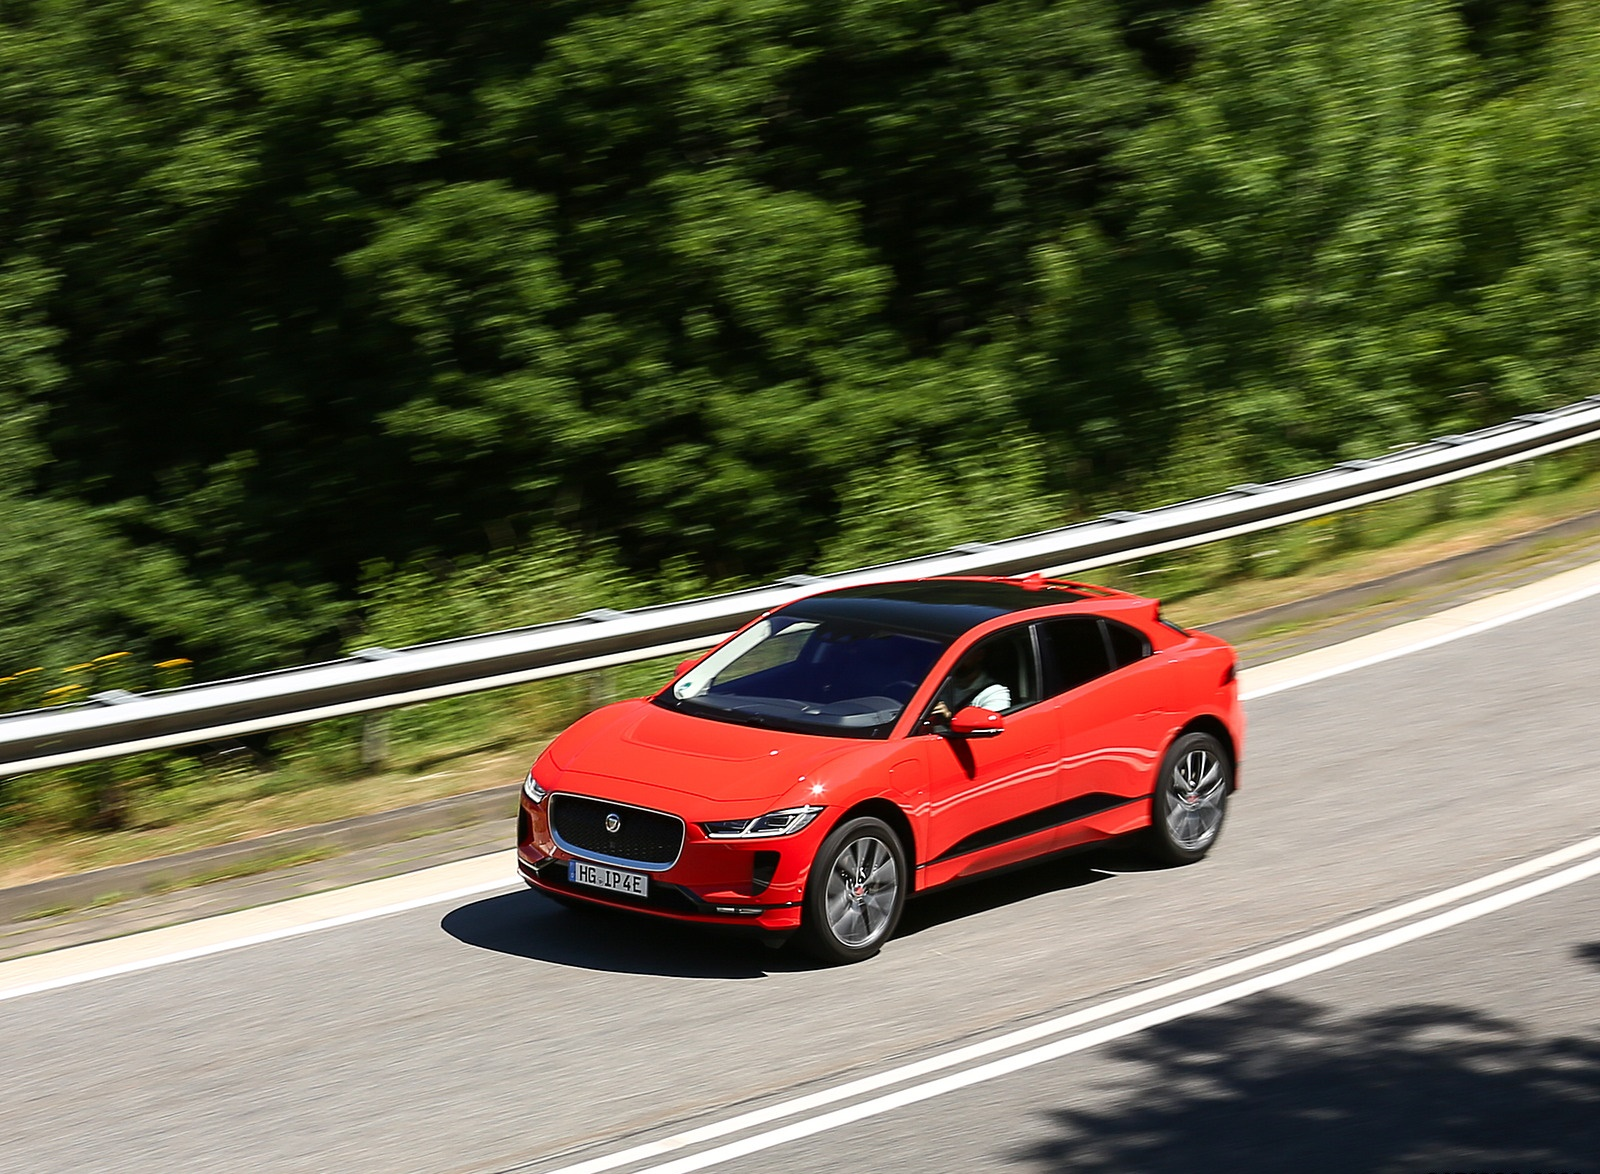 2019 Jaguar I-PACE EV400 AWD HSE First Edition (Color: Photon Red) Front Three-Quarter Wallpapers #28 of 192